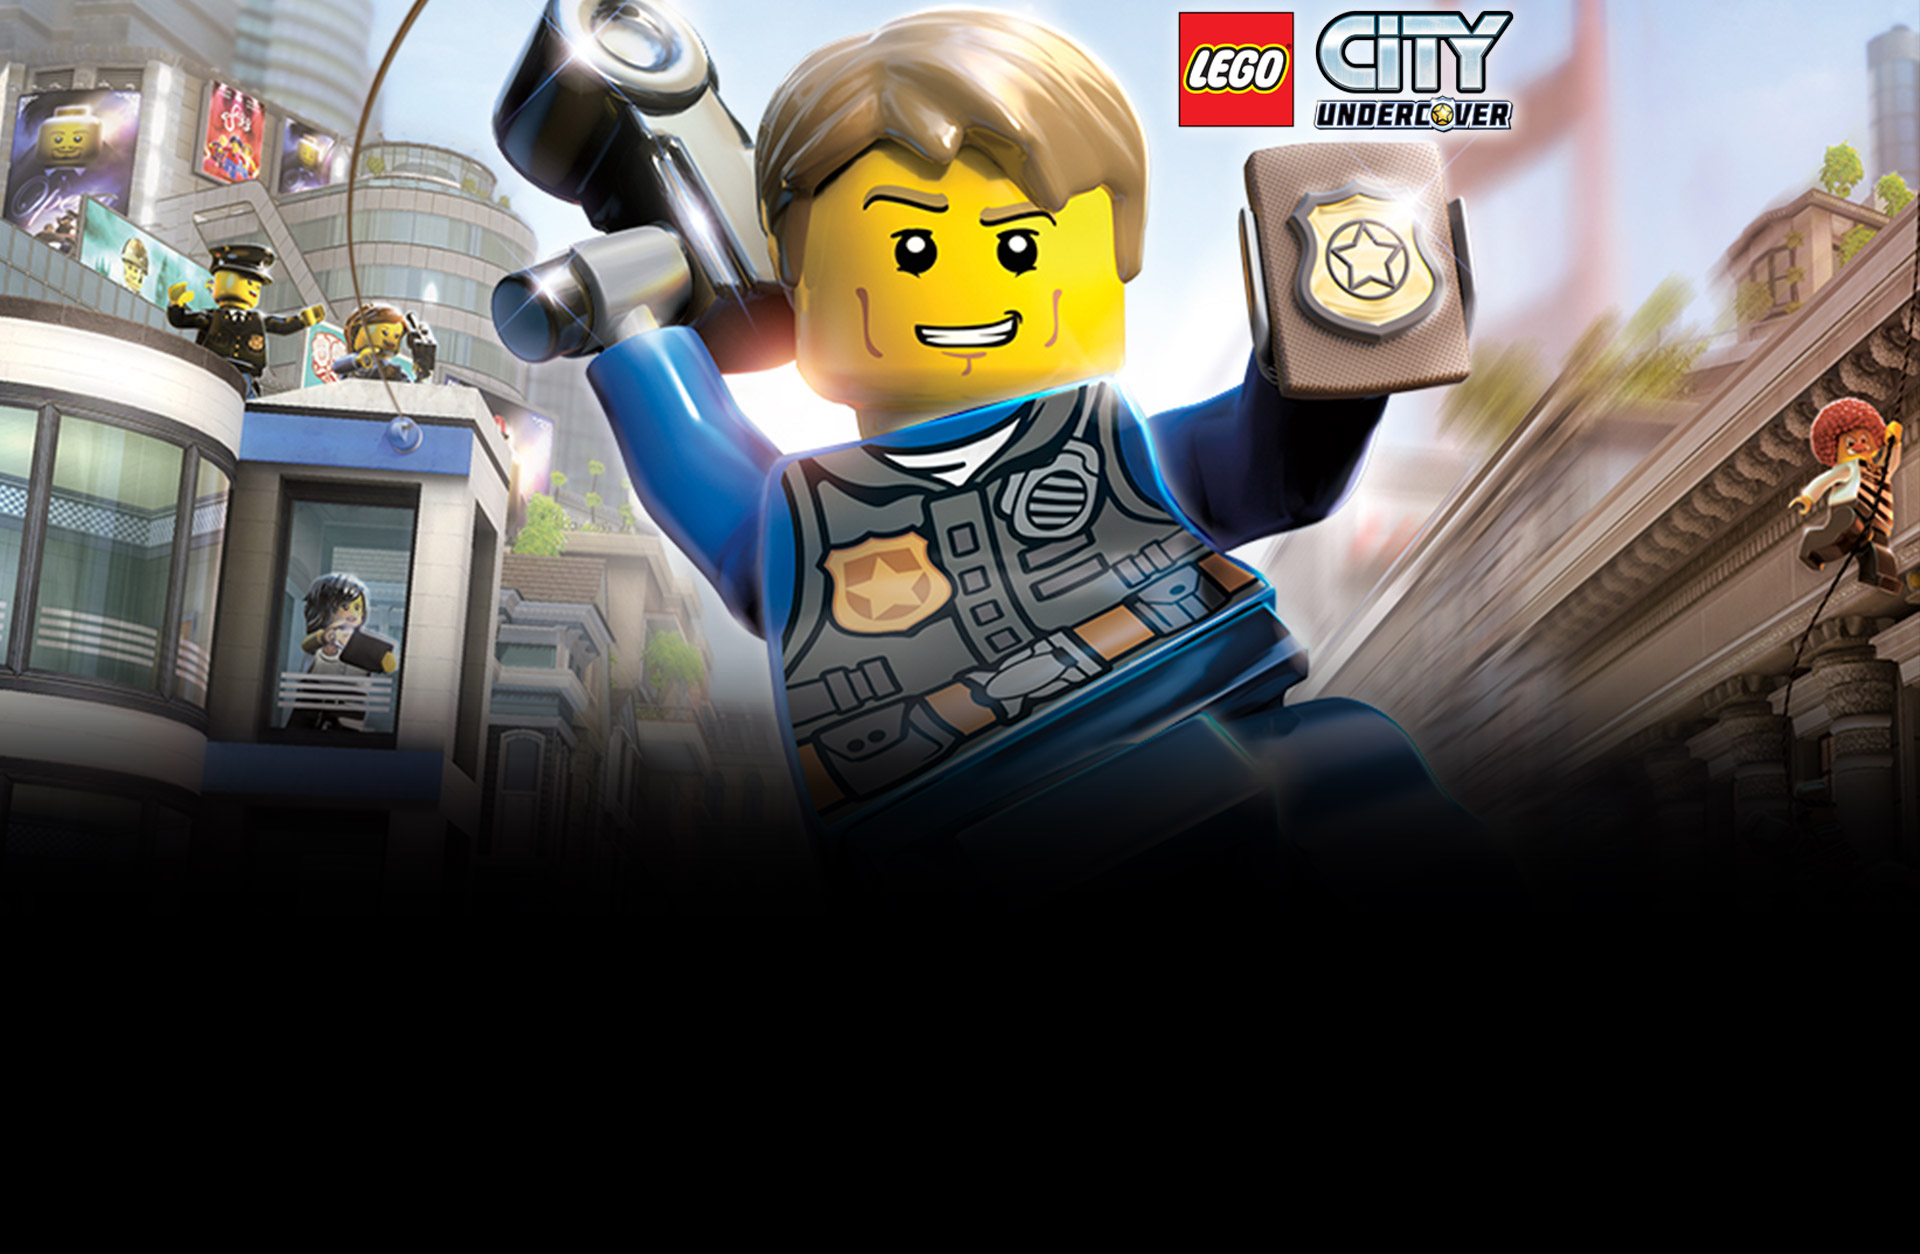 buy lego city undercover on gamesload